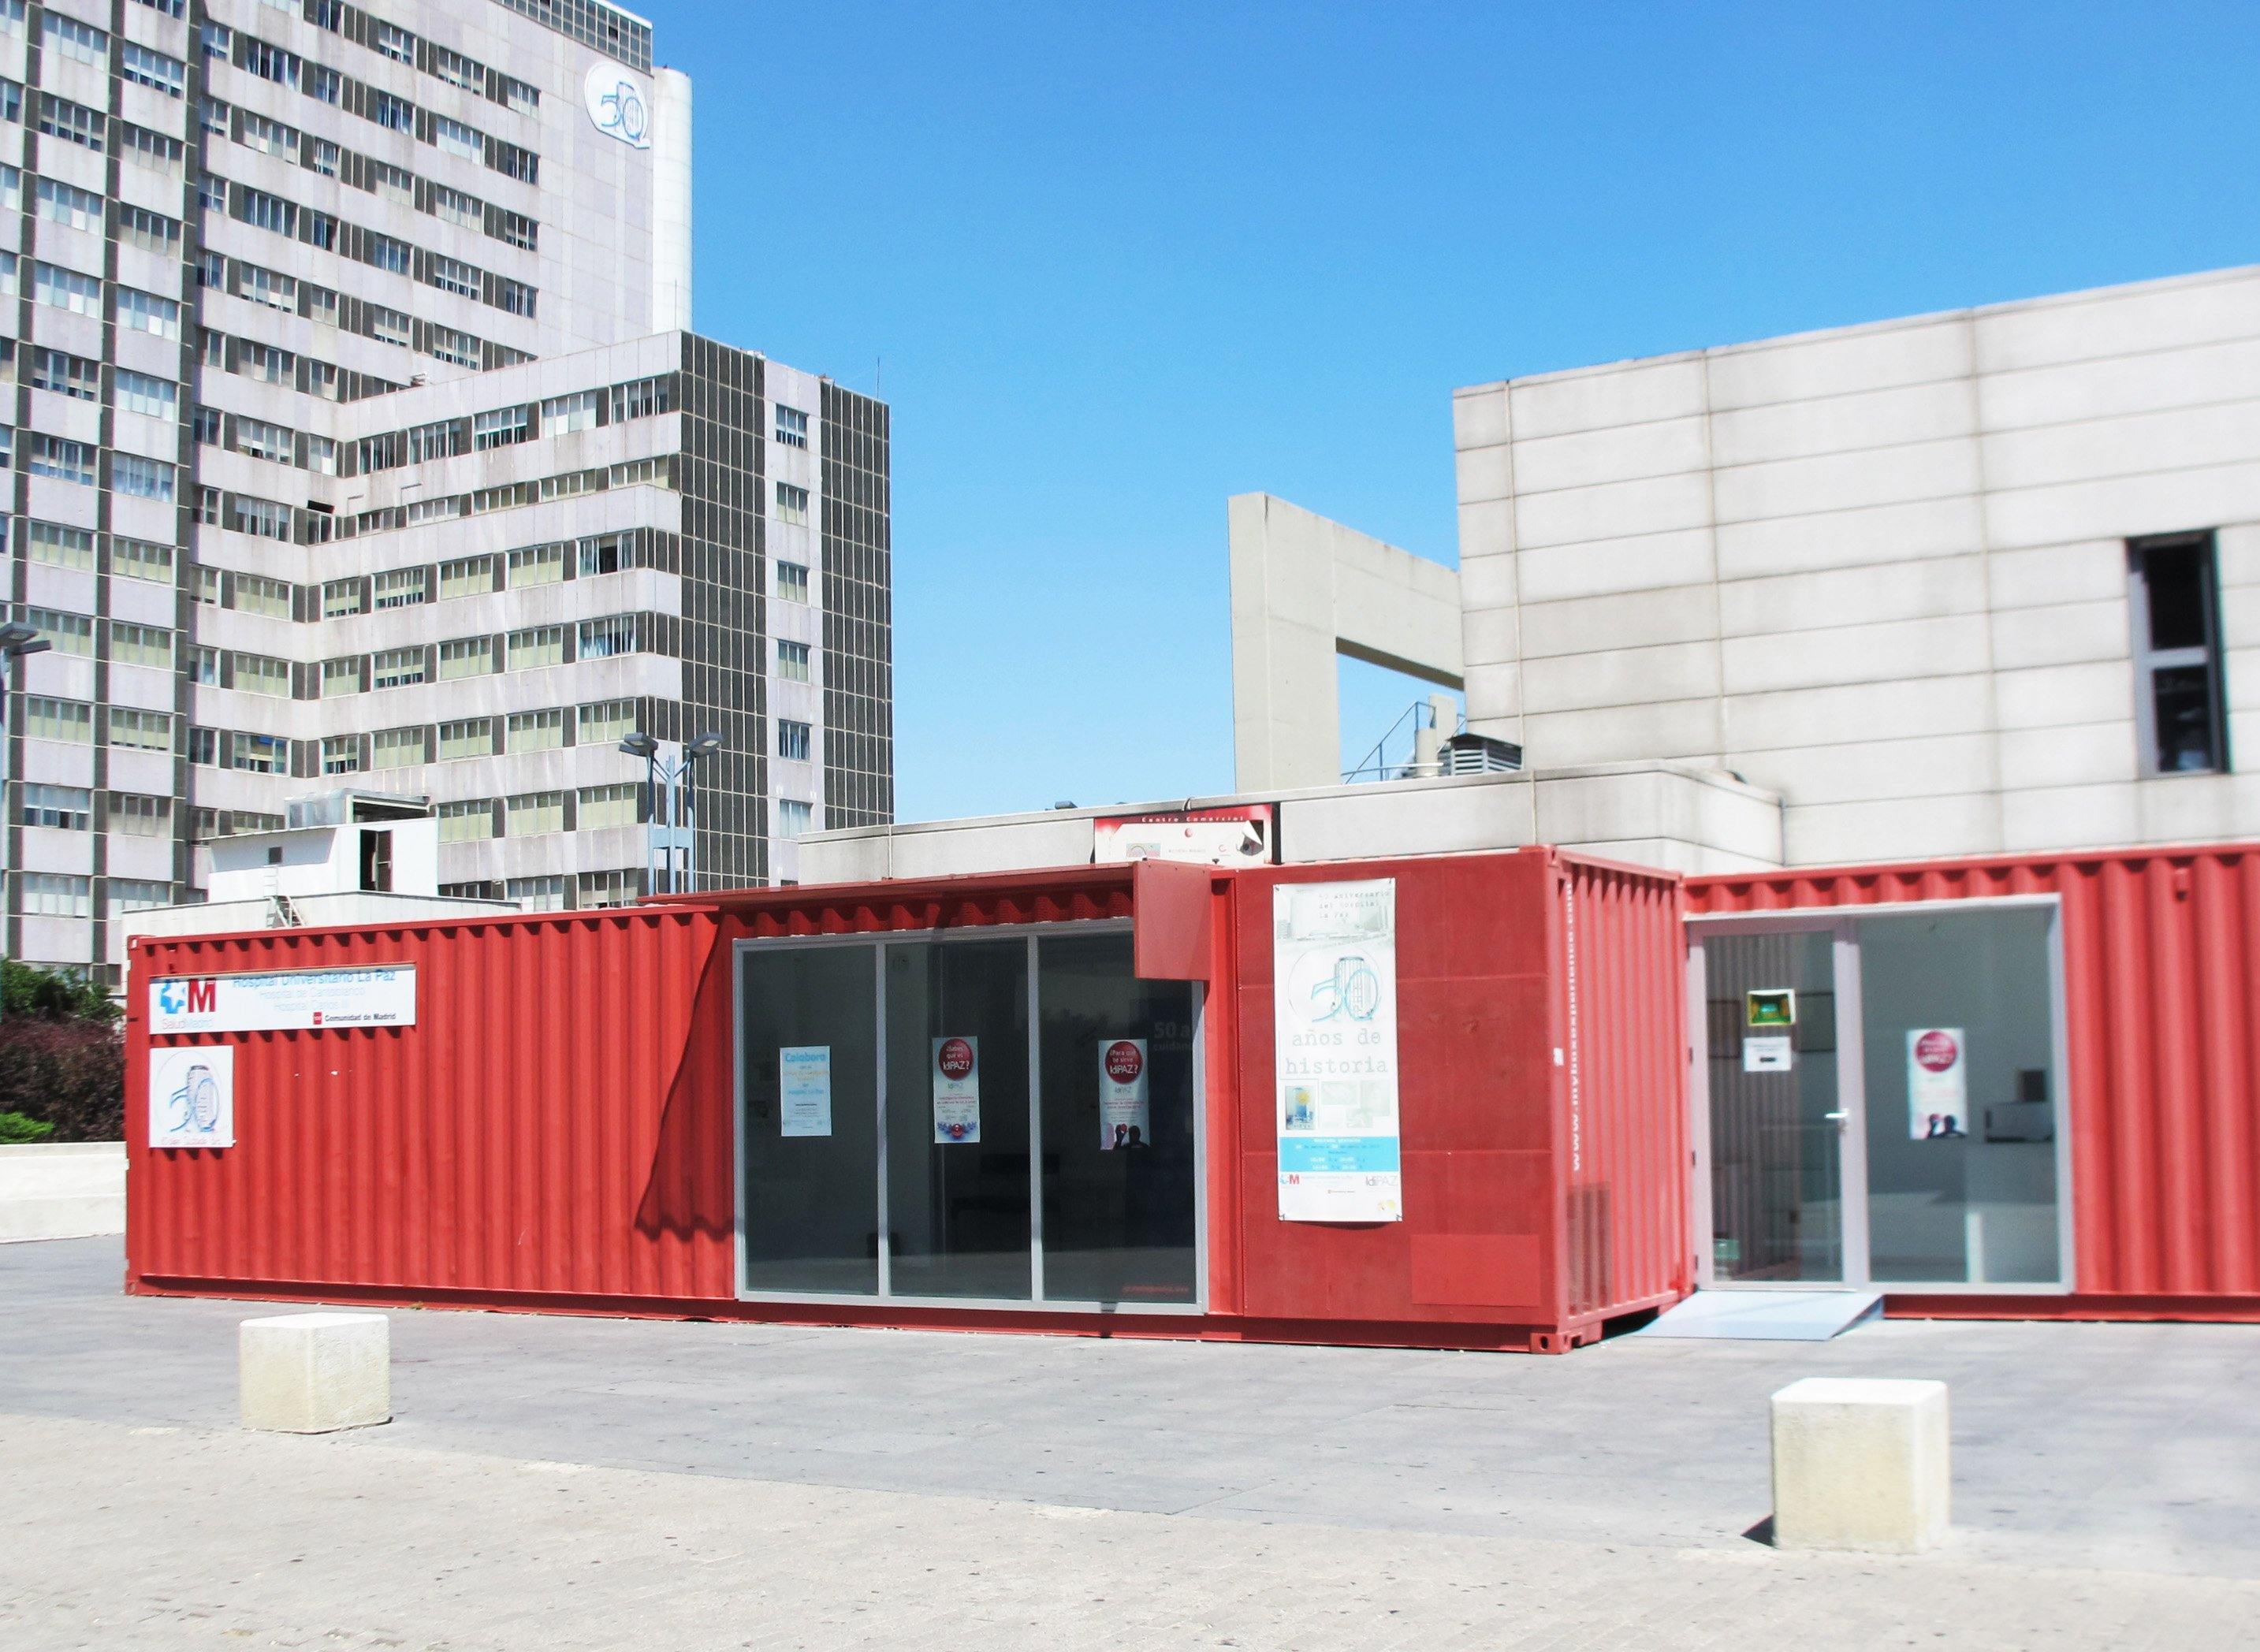 Office containers, La Paz Hospital (Madrid, Spain)